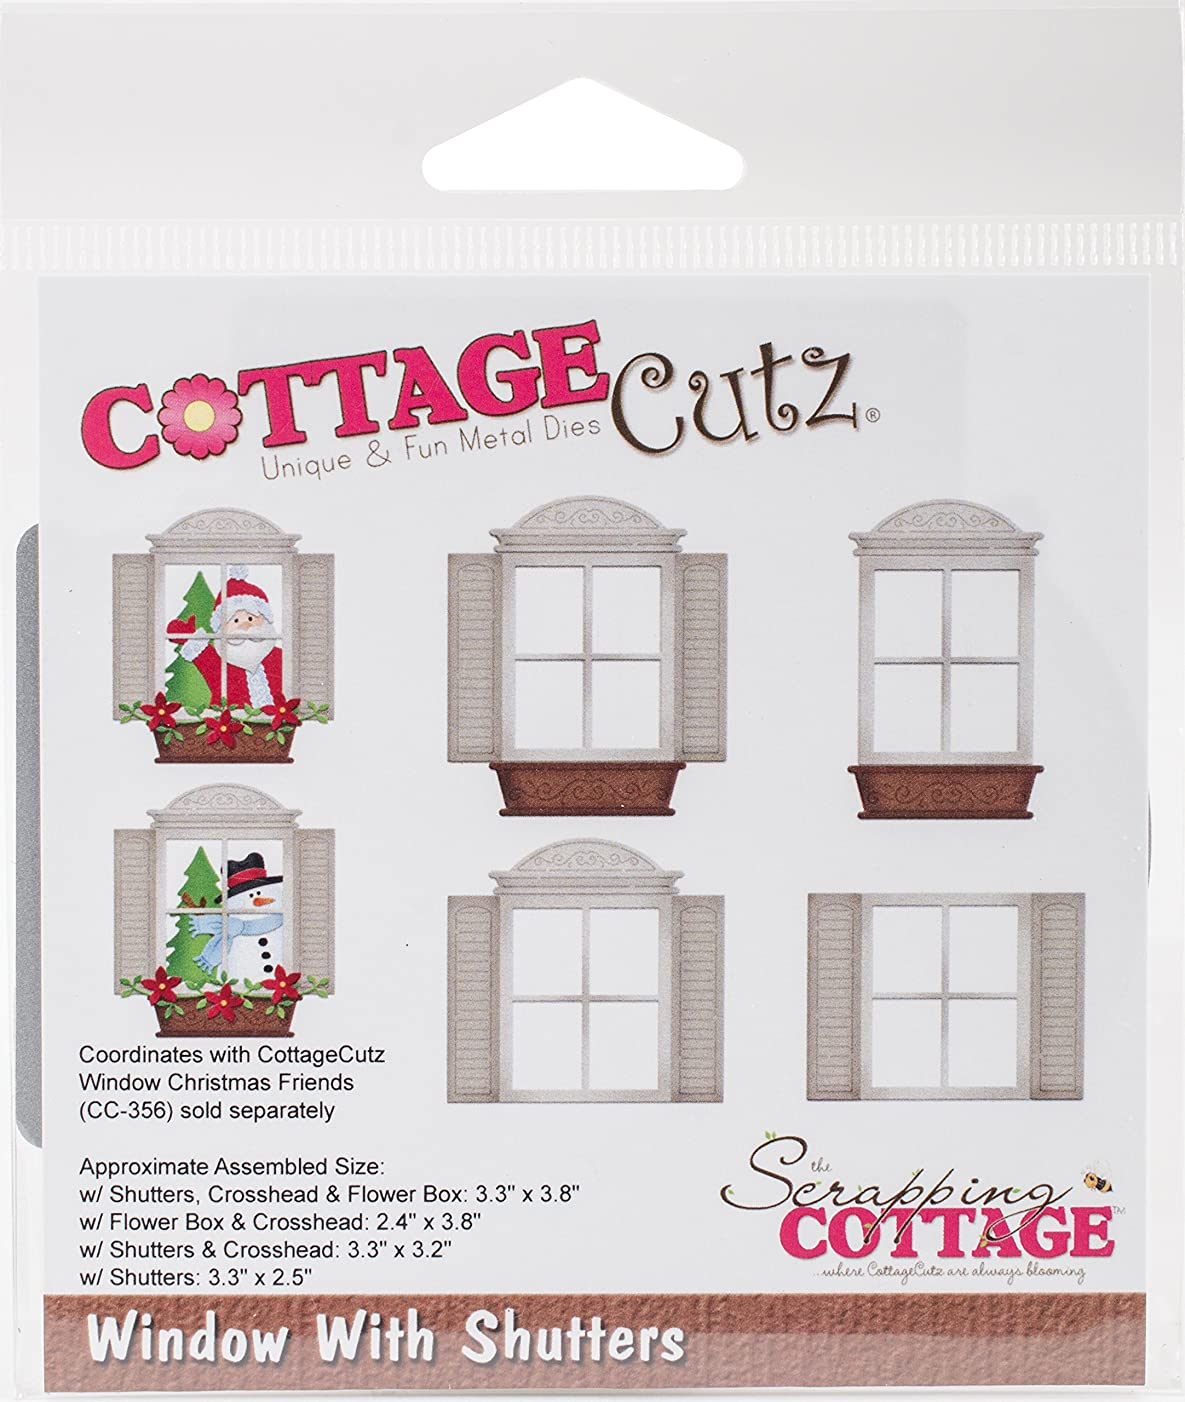 CottageCutz CC-357 Dies-Window W/Shutters 2.4 inches to 3.8 inches